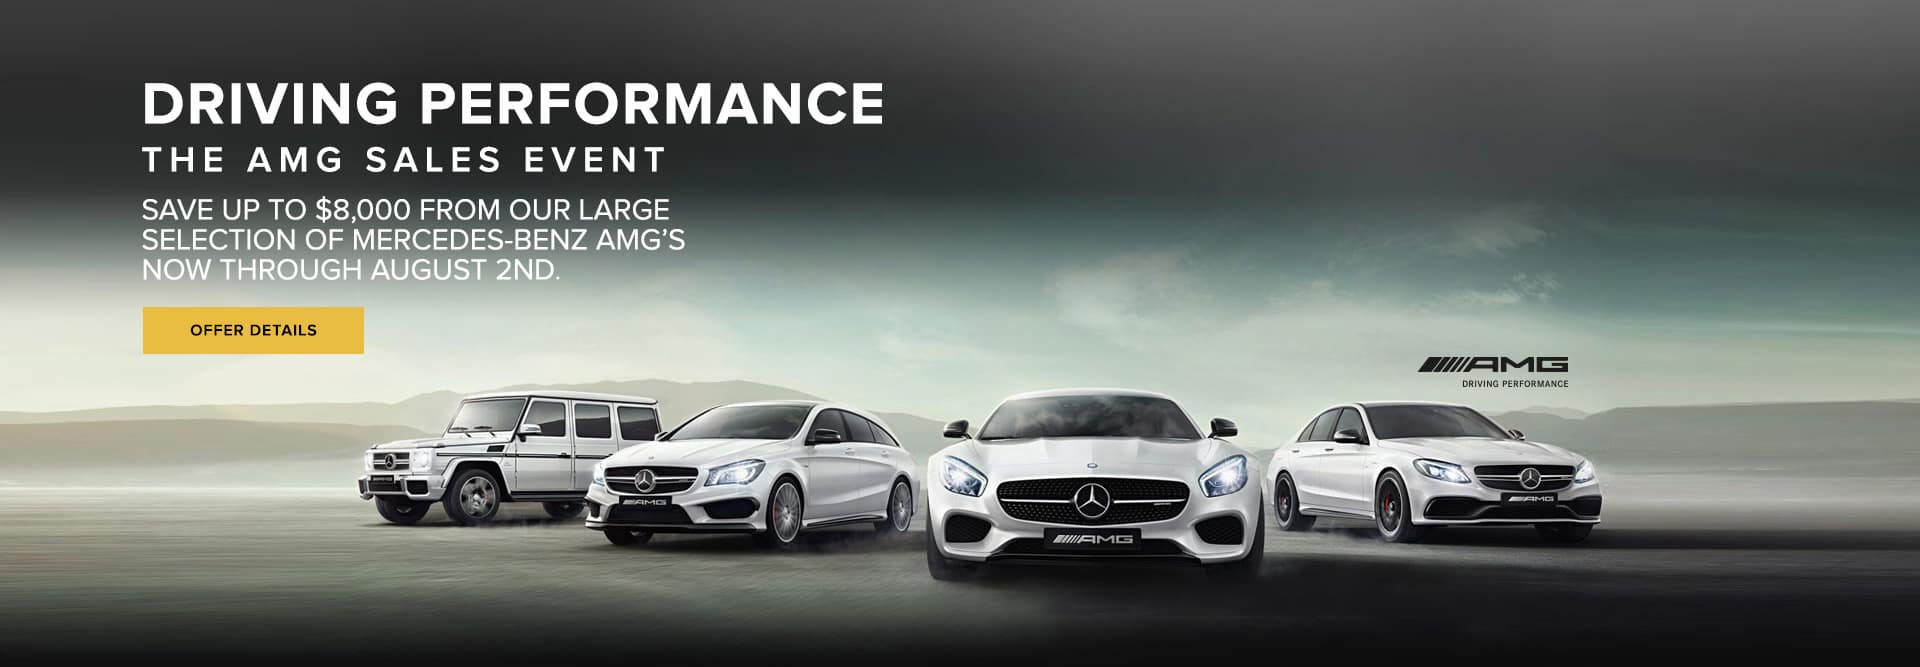 MERCEDES-BENZ AMG LINE UP